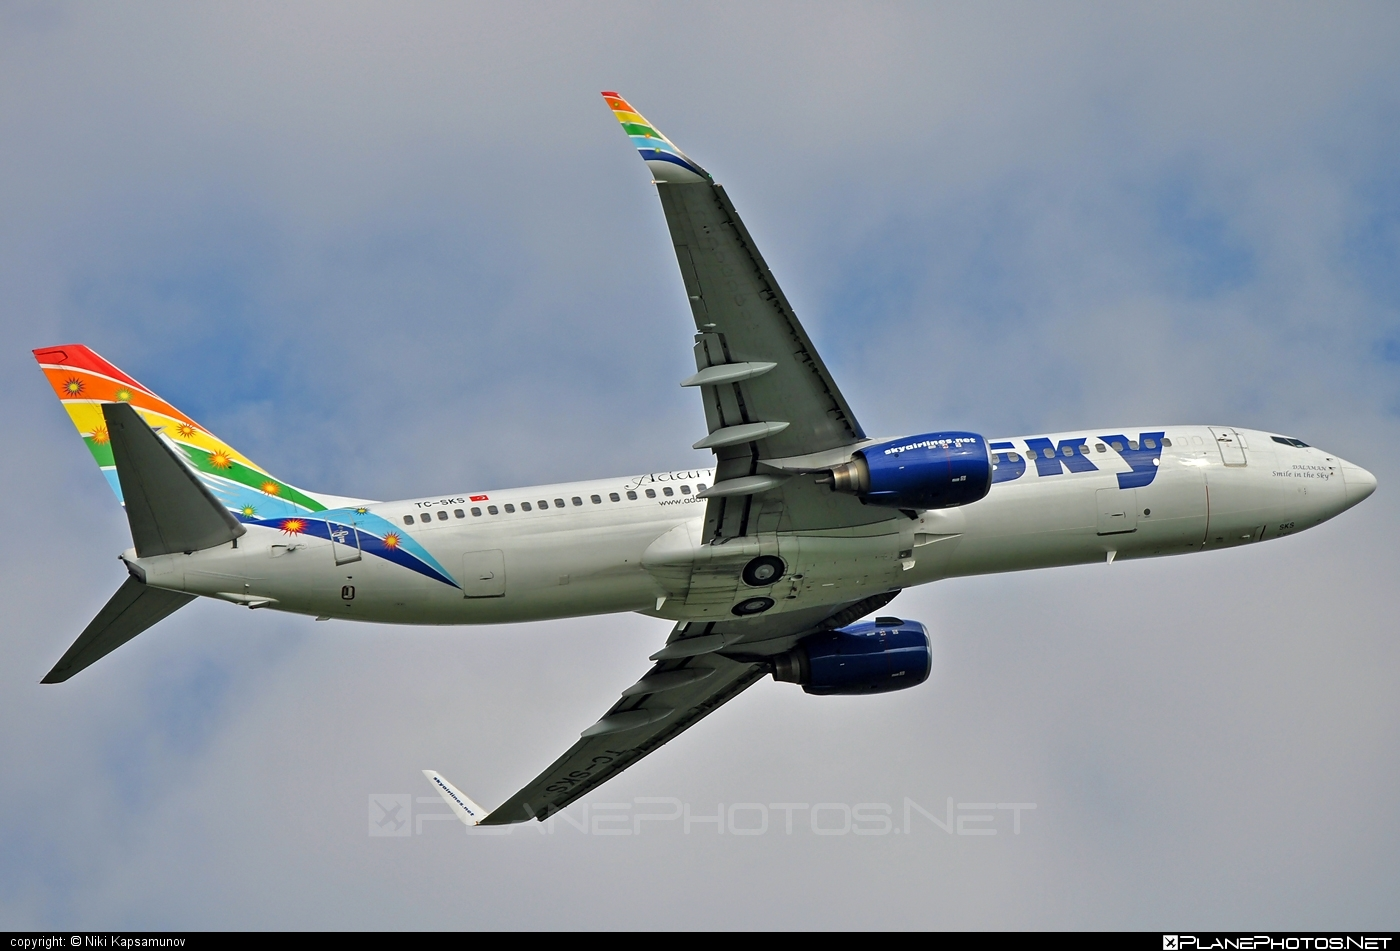 Boeing 737-800 - TC-SKS operated by Sky Airlines #b737 #b737nextgen #b737ng #boeing #boeing737